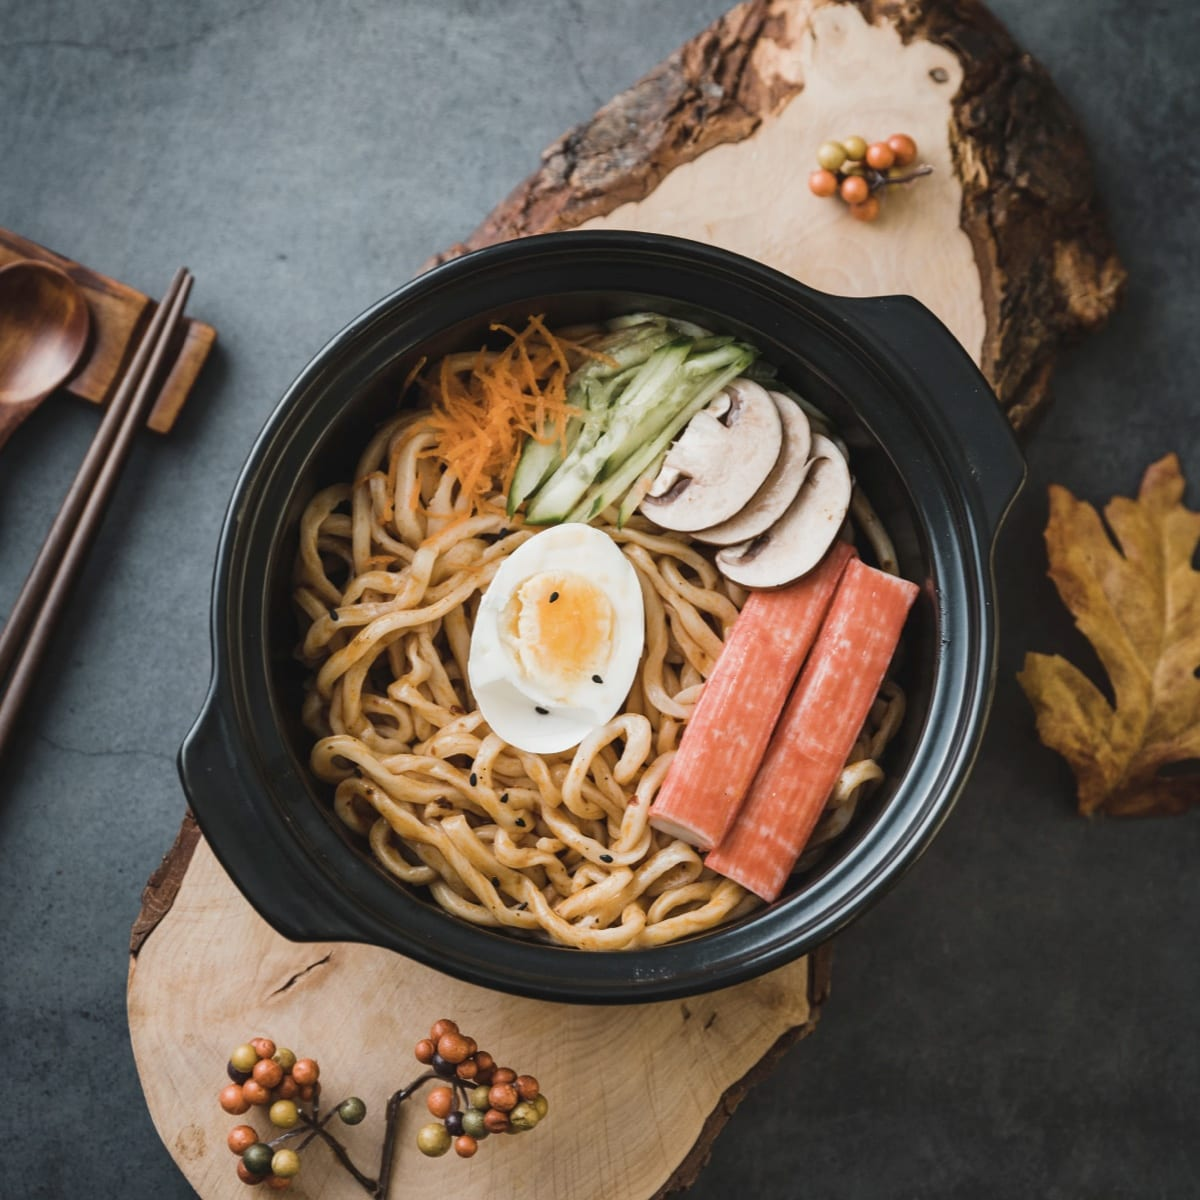 Is Ramen Healthy? A Deep Dive on Instant Ramen And Nutrition